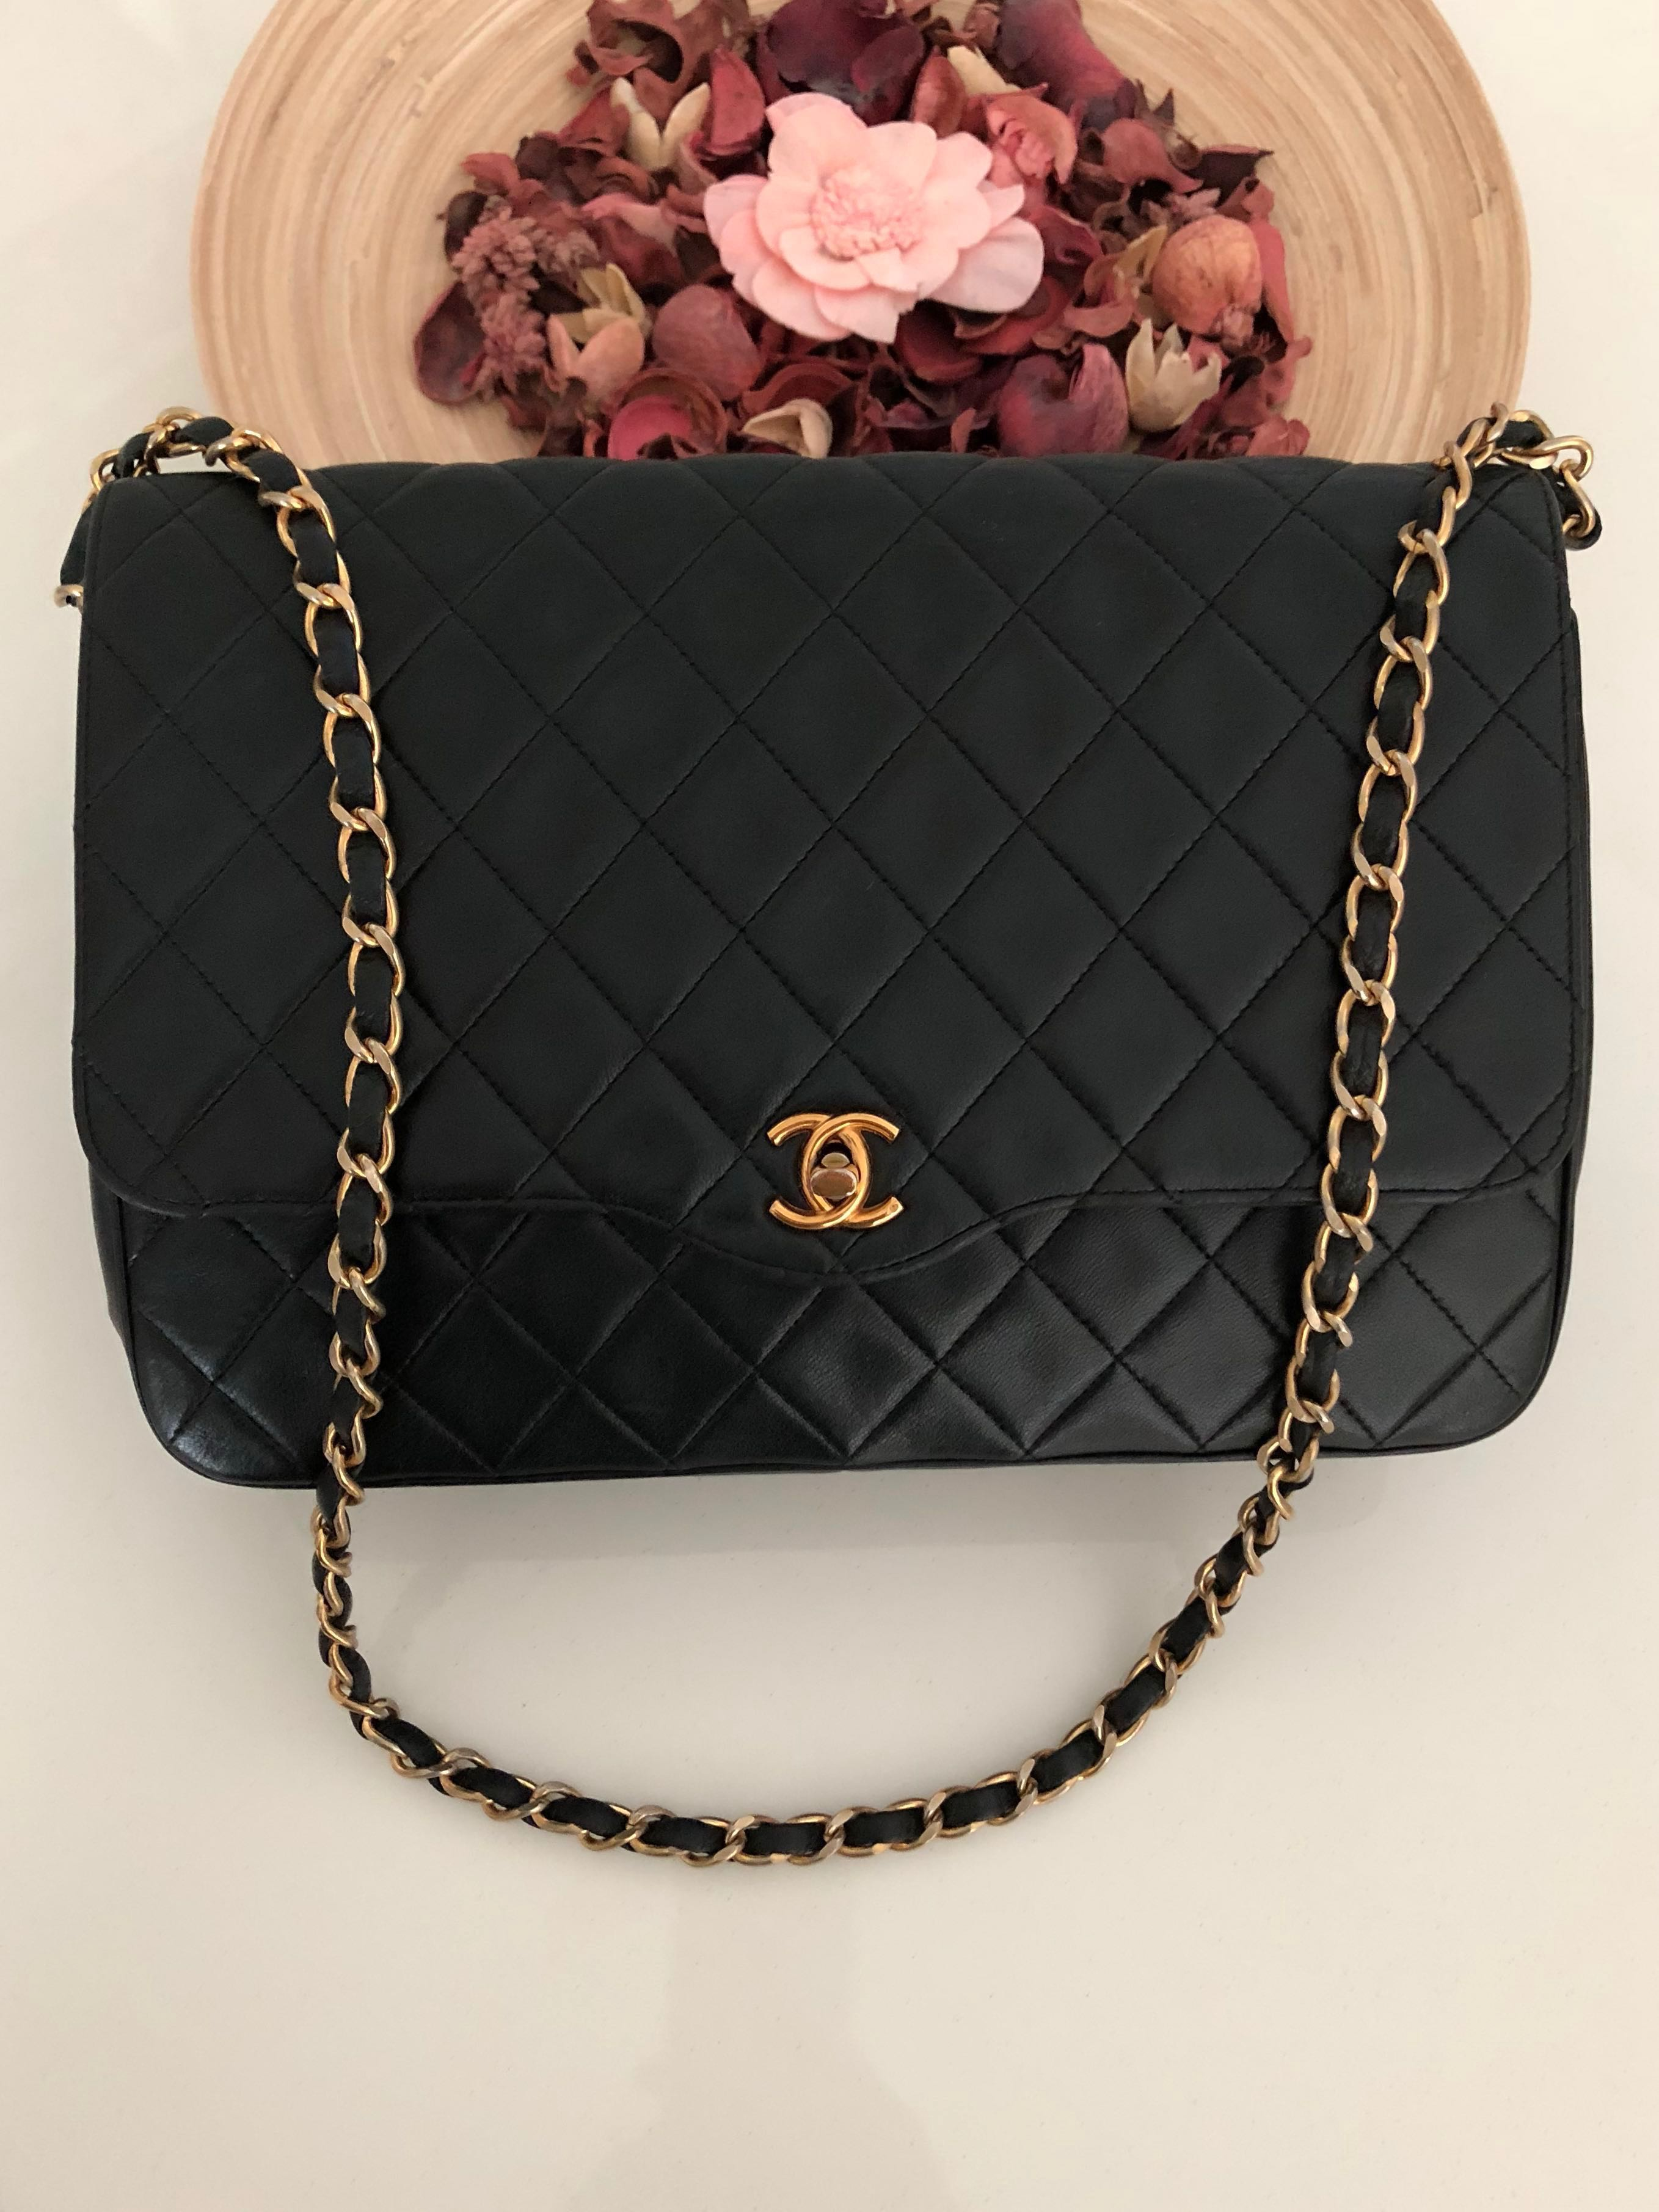 77b4dfcd2a CHANEL Both Sided CC Tote, Rare Chain On Leather Strap, Large Lady ...